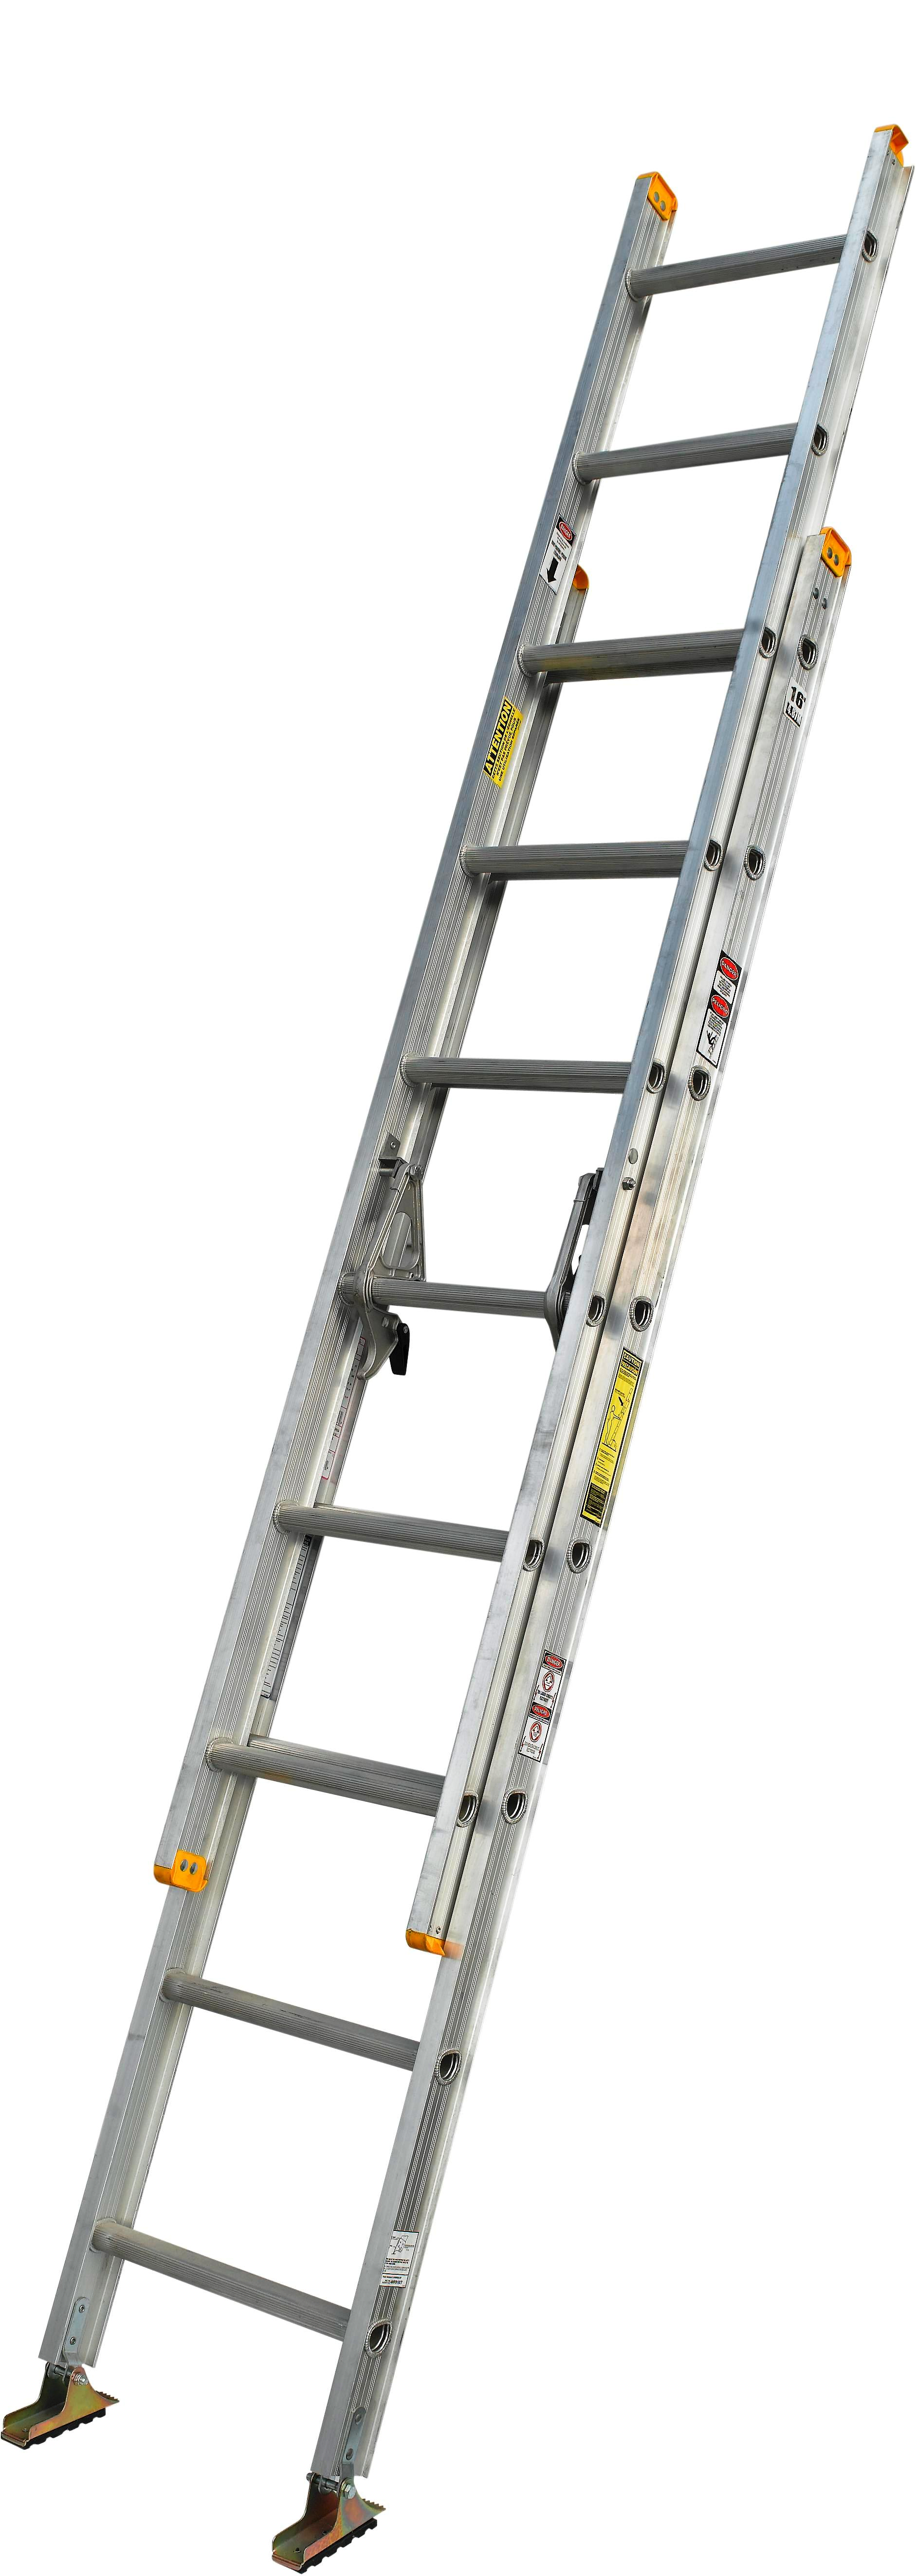 Ladder, High Definition Picture, Catrina Eifert #2169751